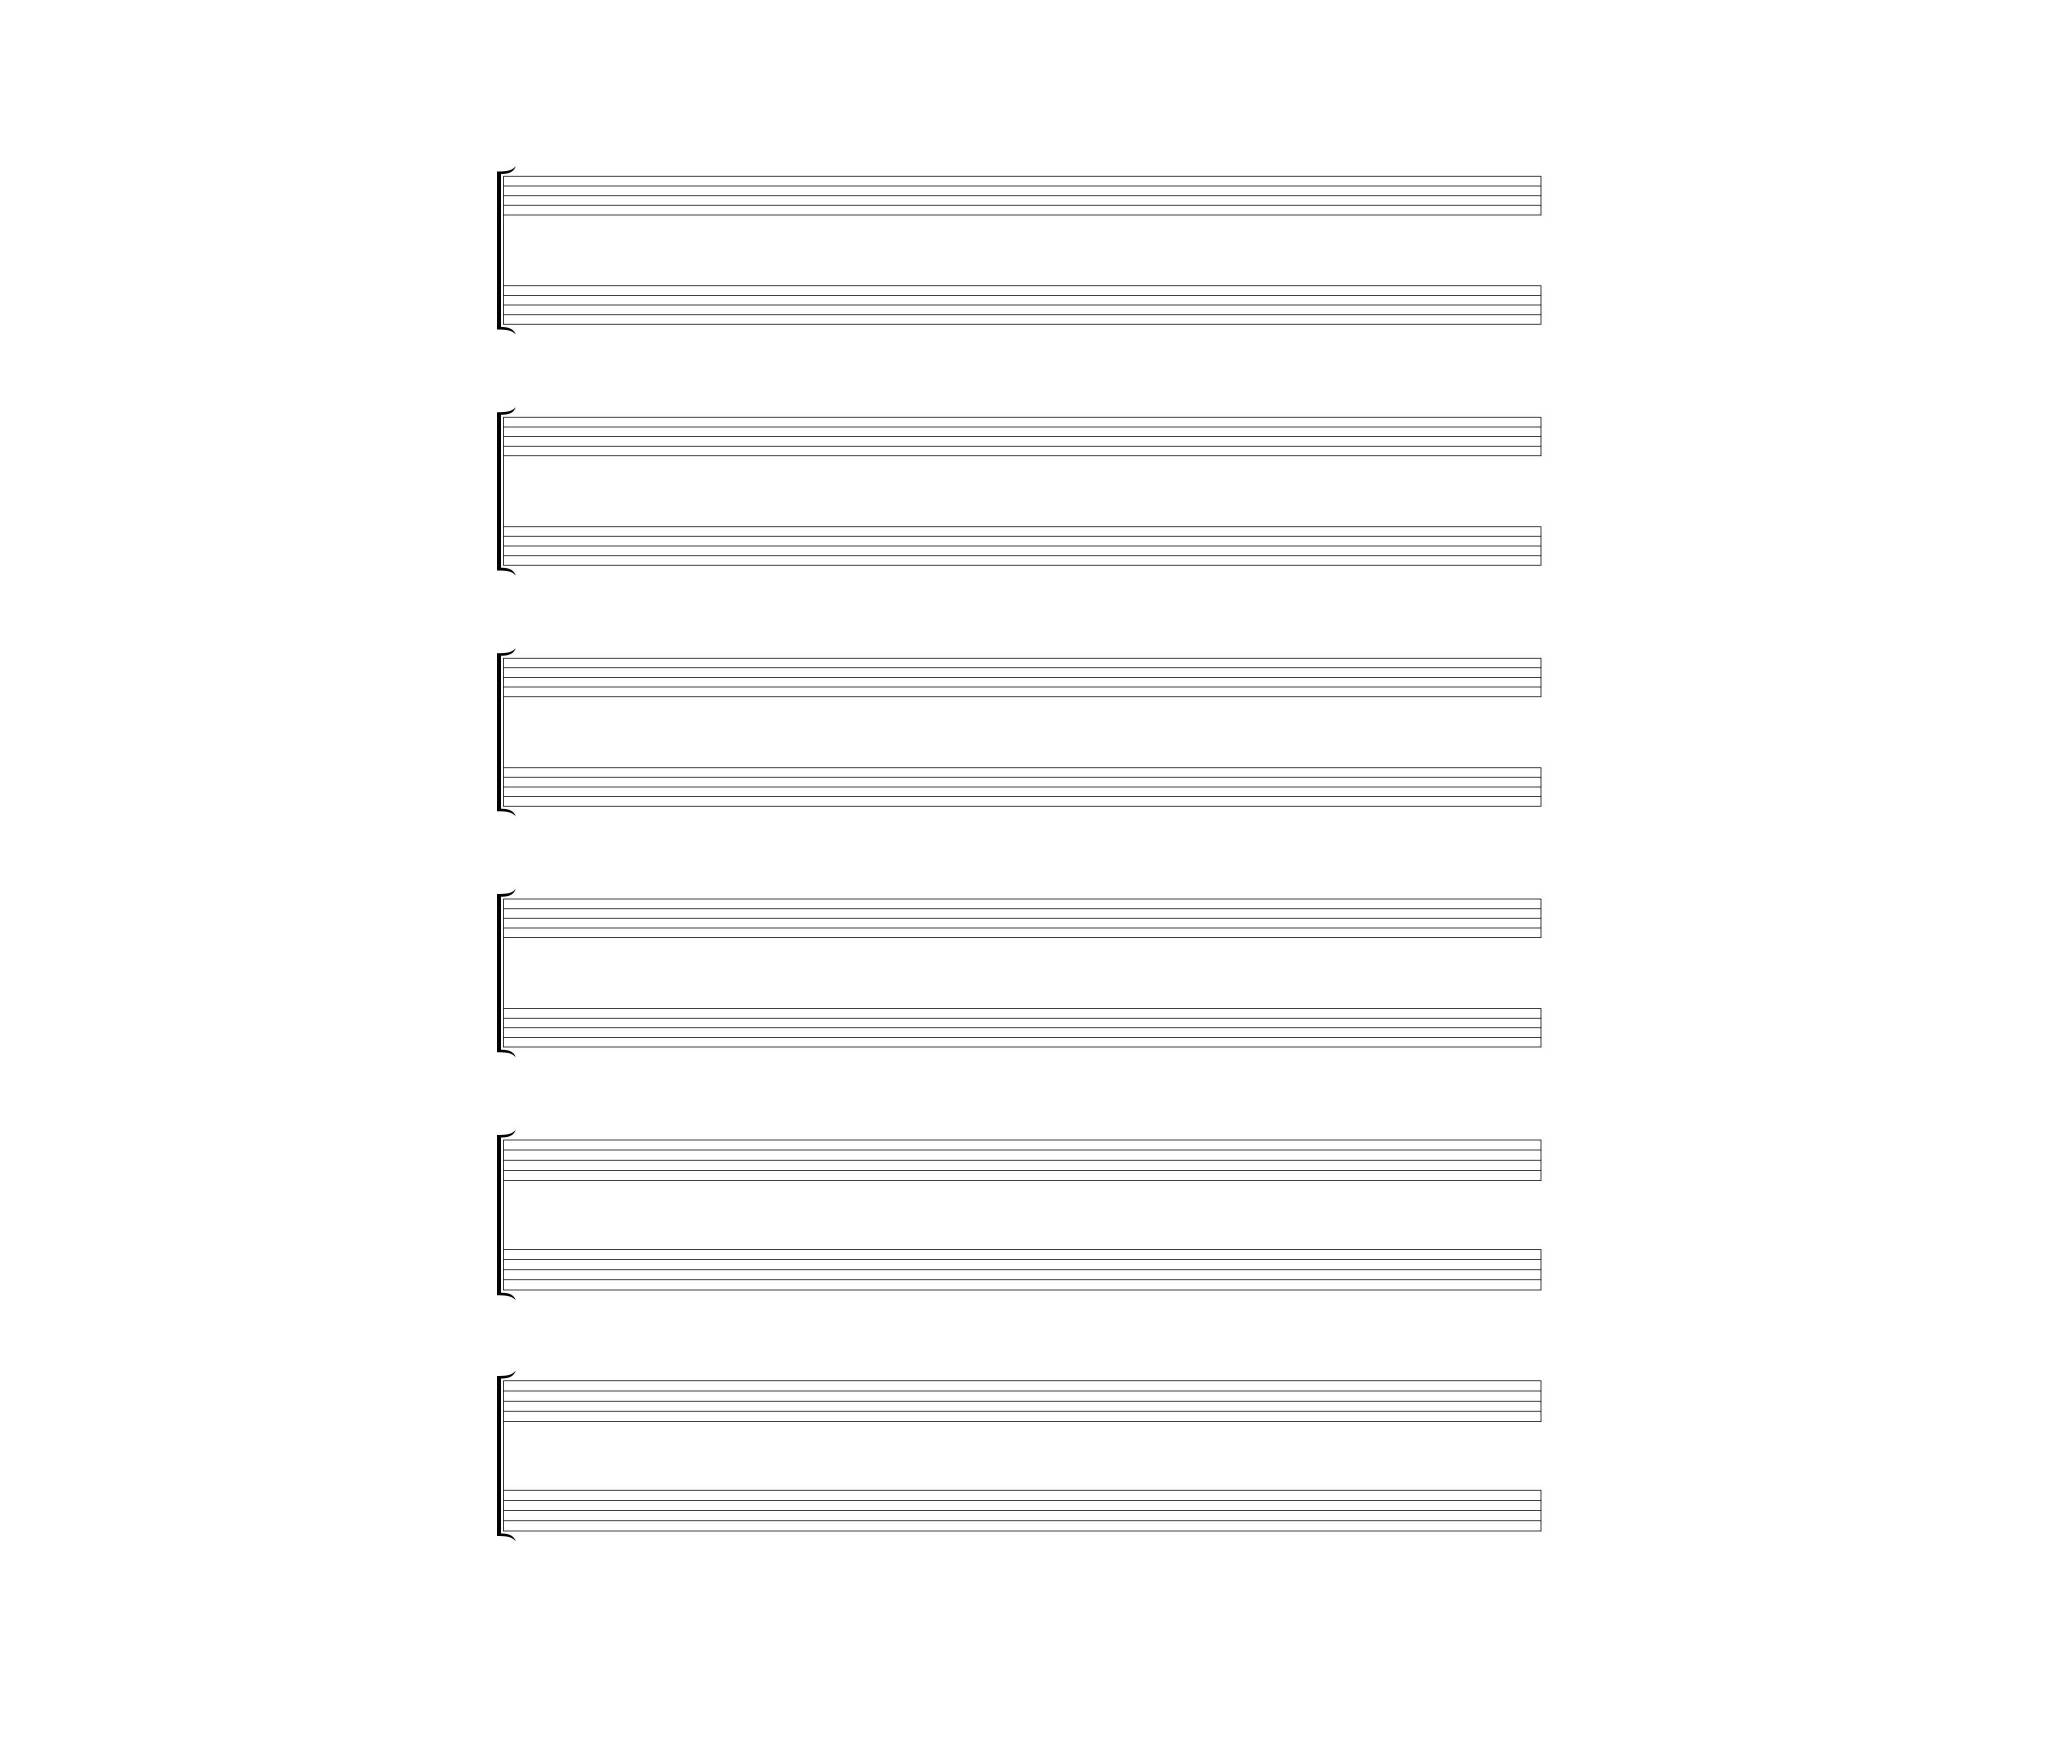 12-staves-without-clefs-blank-sheet-music